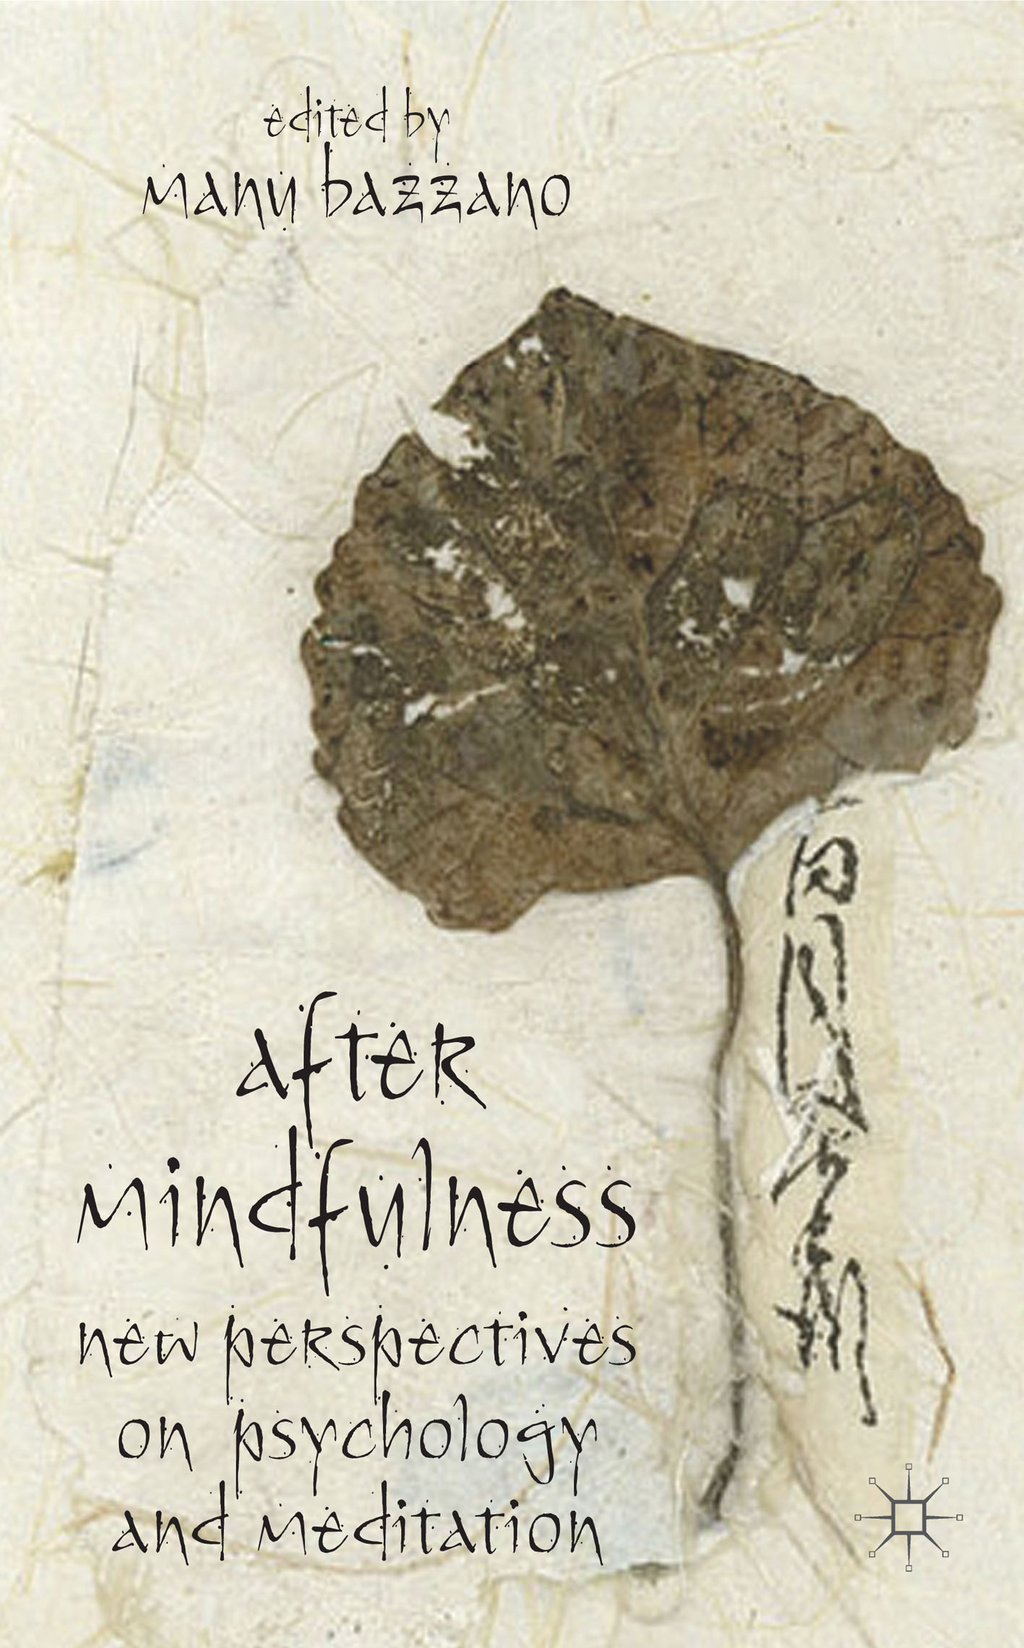 After Mindfulness New Perspectives on Psychology and Meditation